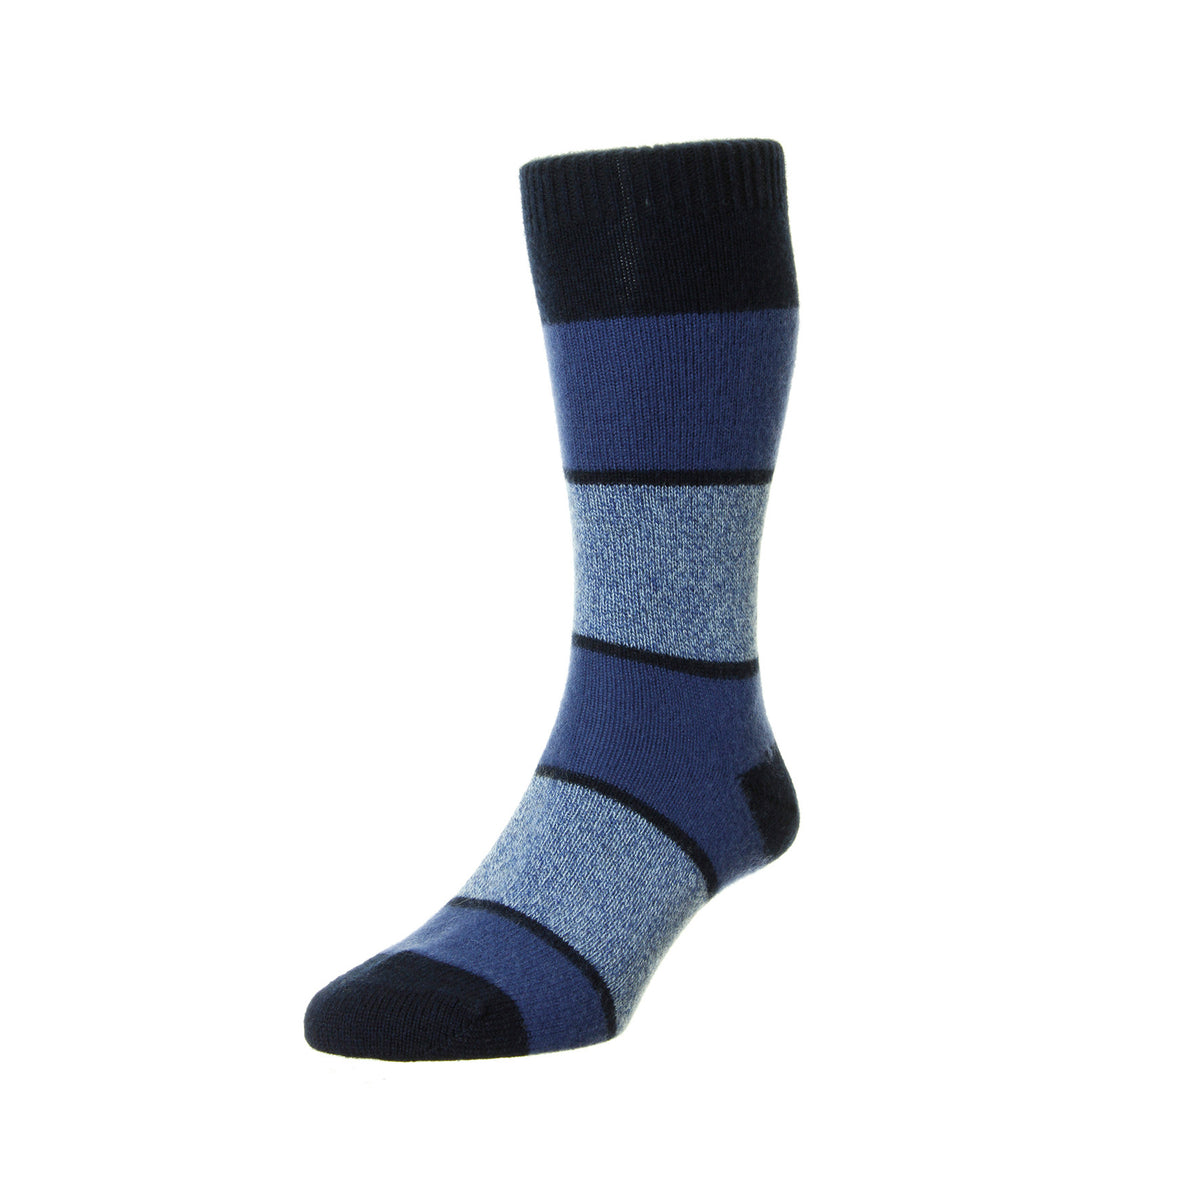 Pantherella - Mens Cashmere Socks - 5786 Striped